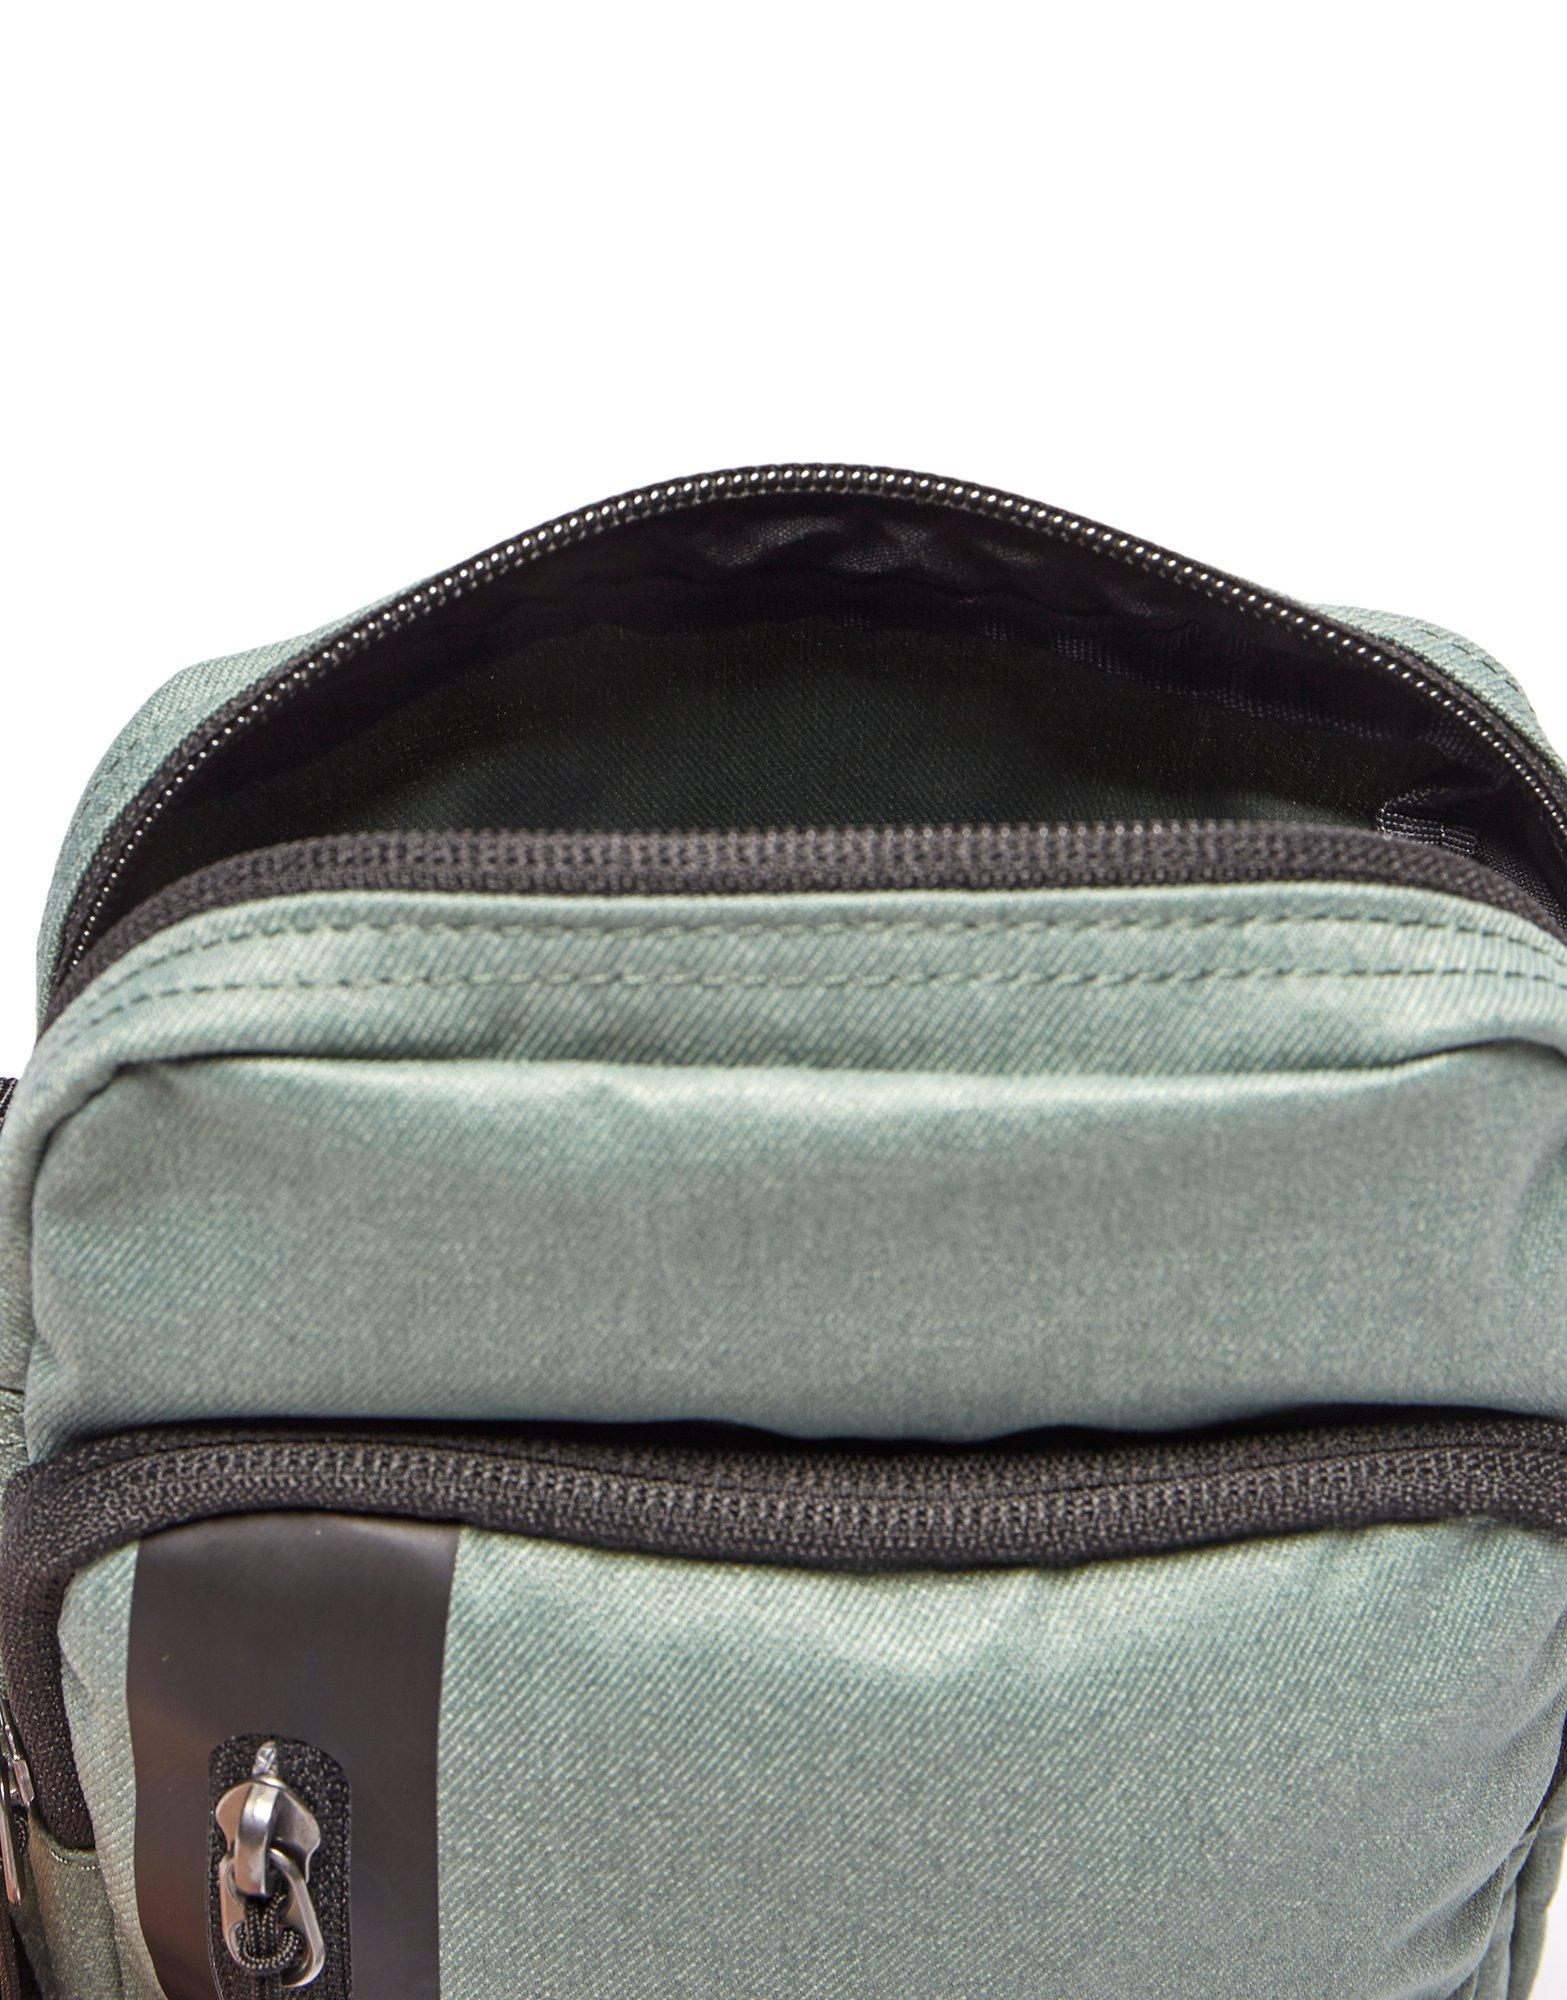 1ac23a7e14c3 Nike Core Small Items 3.0 Pouch Bag in Green for Men - Lyst